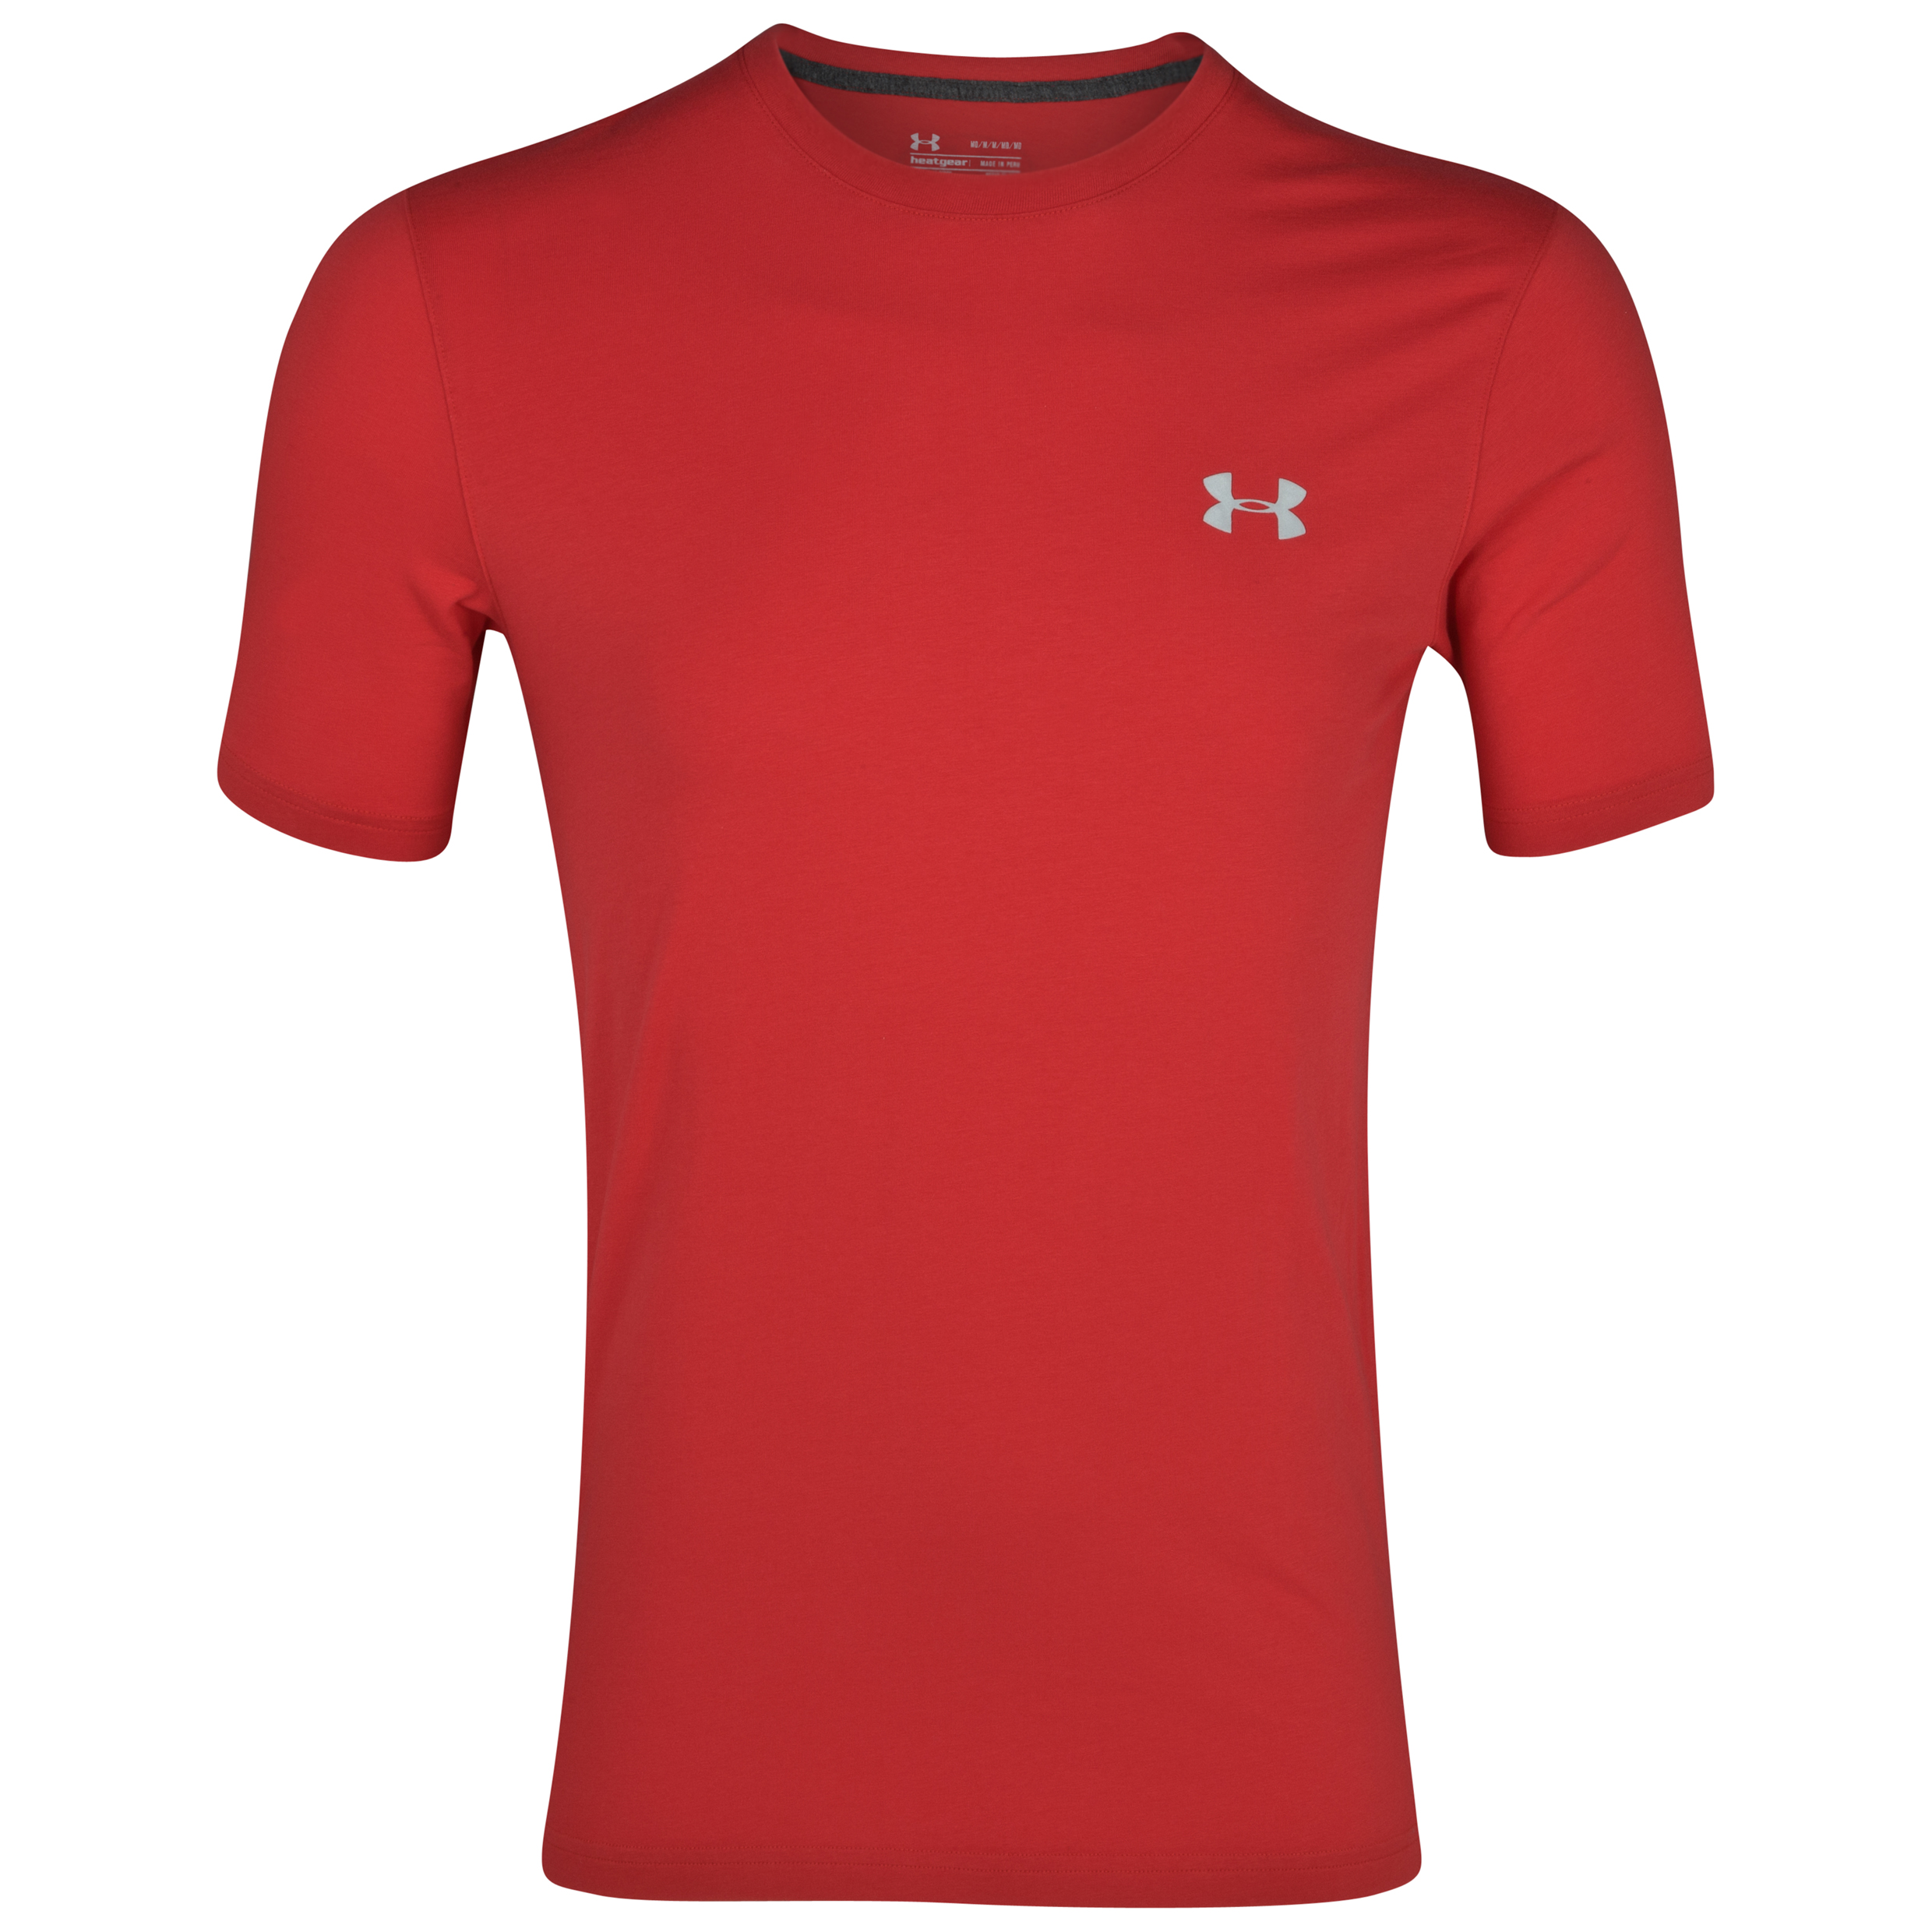 Under Armour Charged Cotton T-Shirt - Red/Aluminium